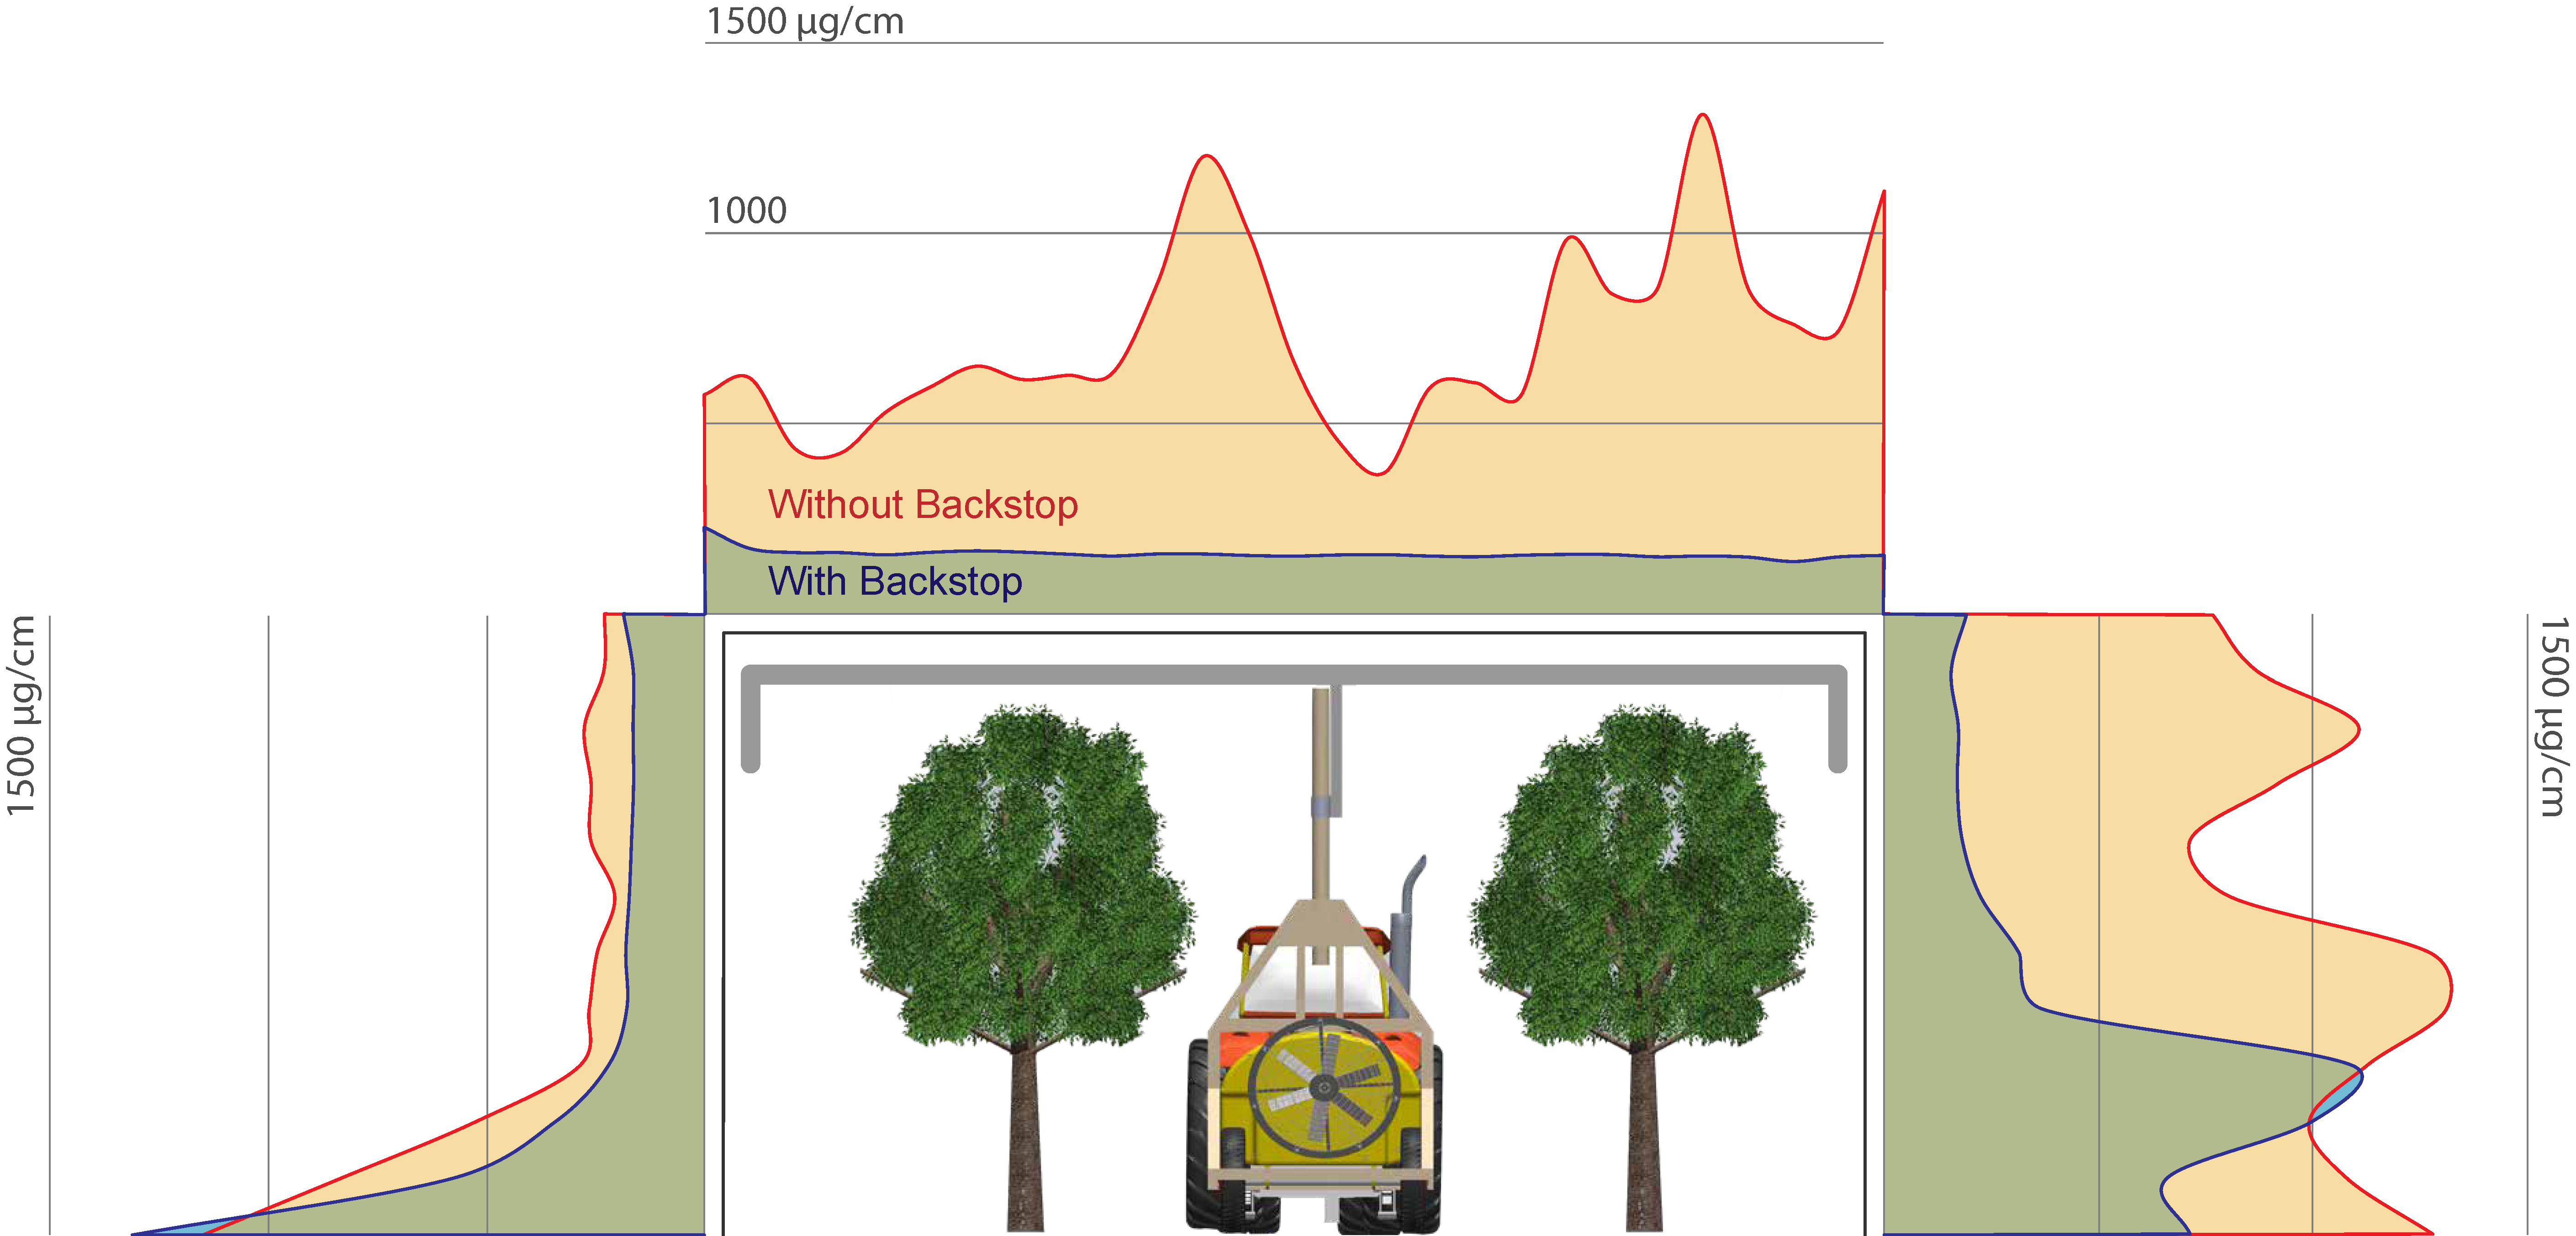 Results of dye deposition analysis without backstop and with backstop. The backstop system significantly reduced spay drift largely from the top of the trees